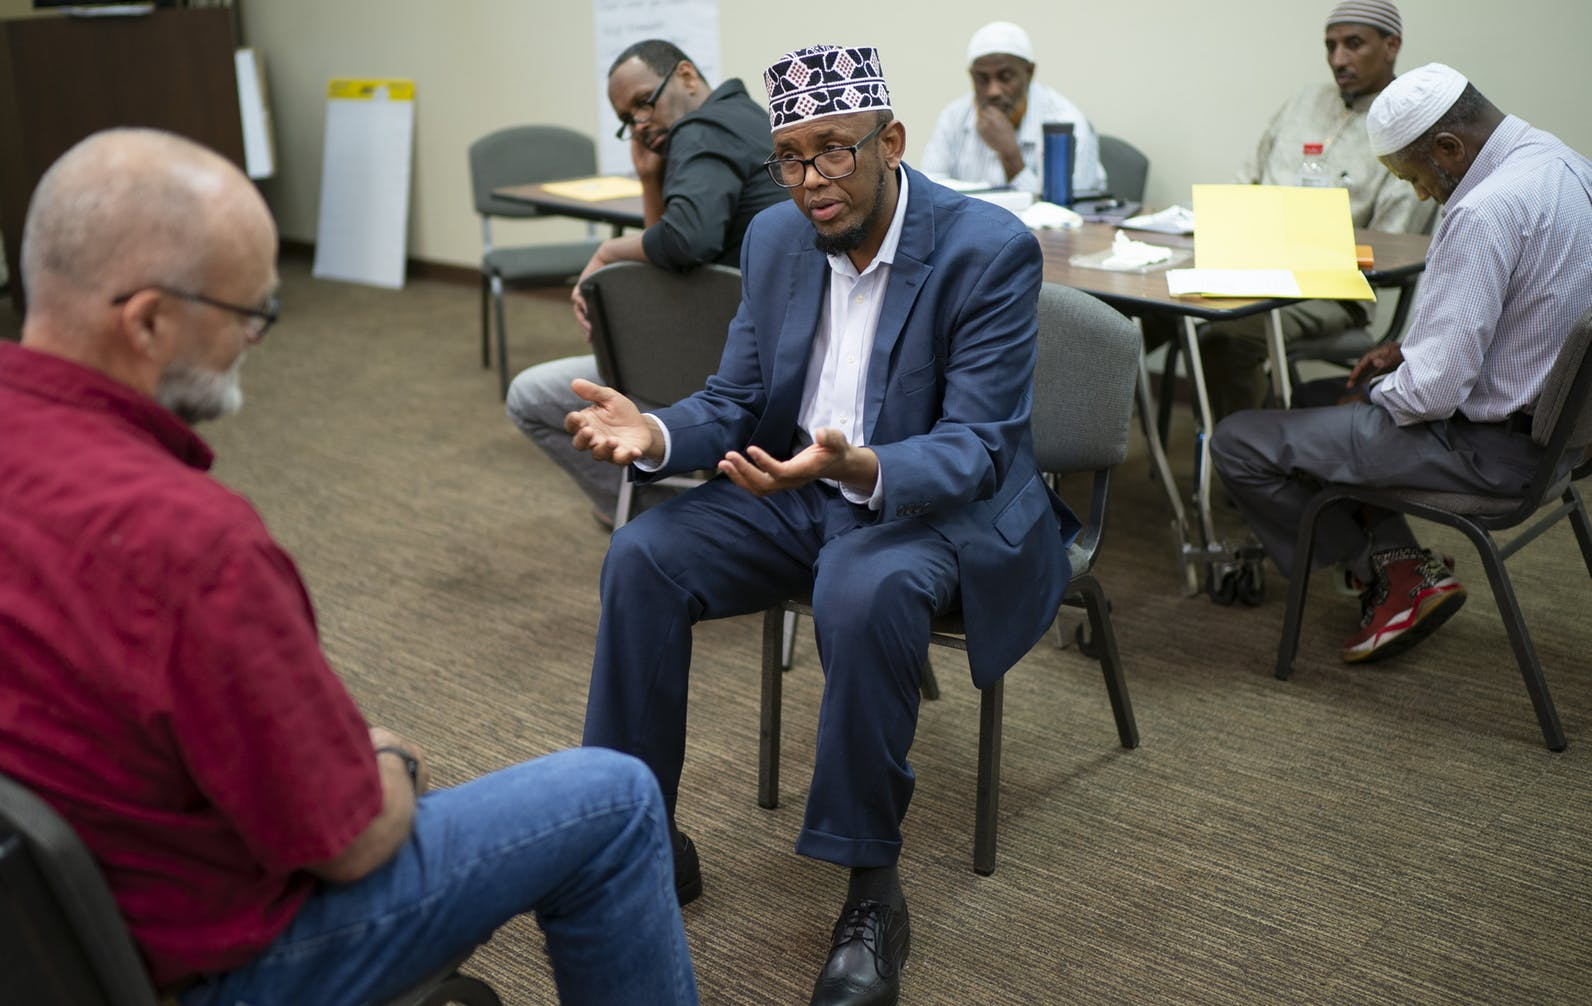 Project to boost ranks of Muslim chaplains launches in Minnesota